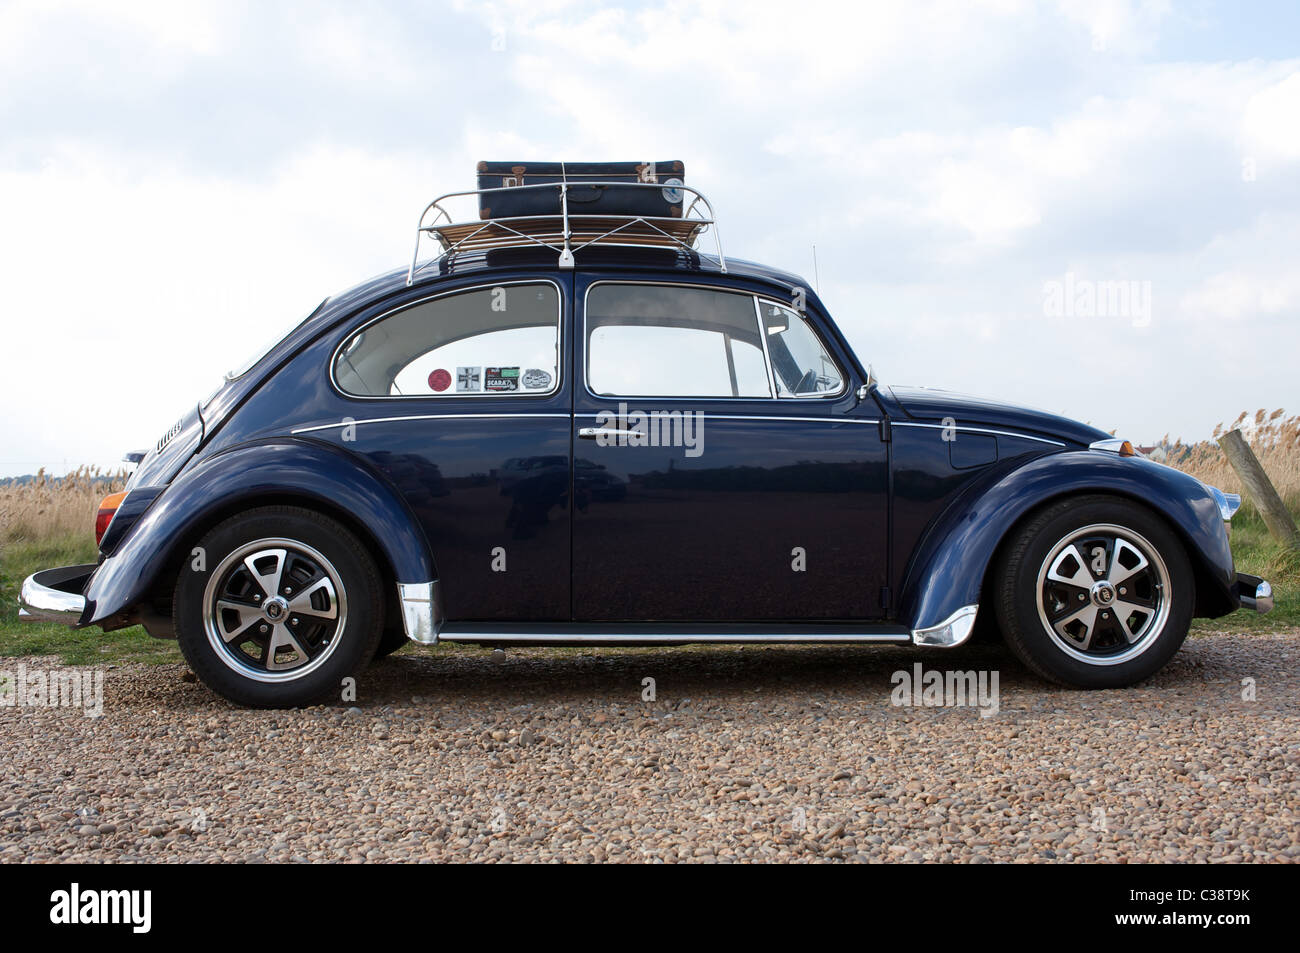 VW Beetle car Mk1 - Stock Image